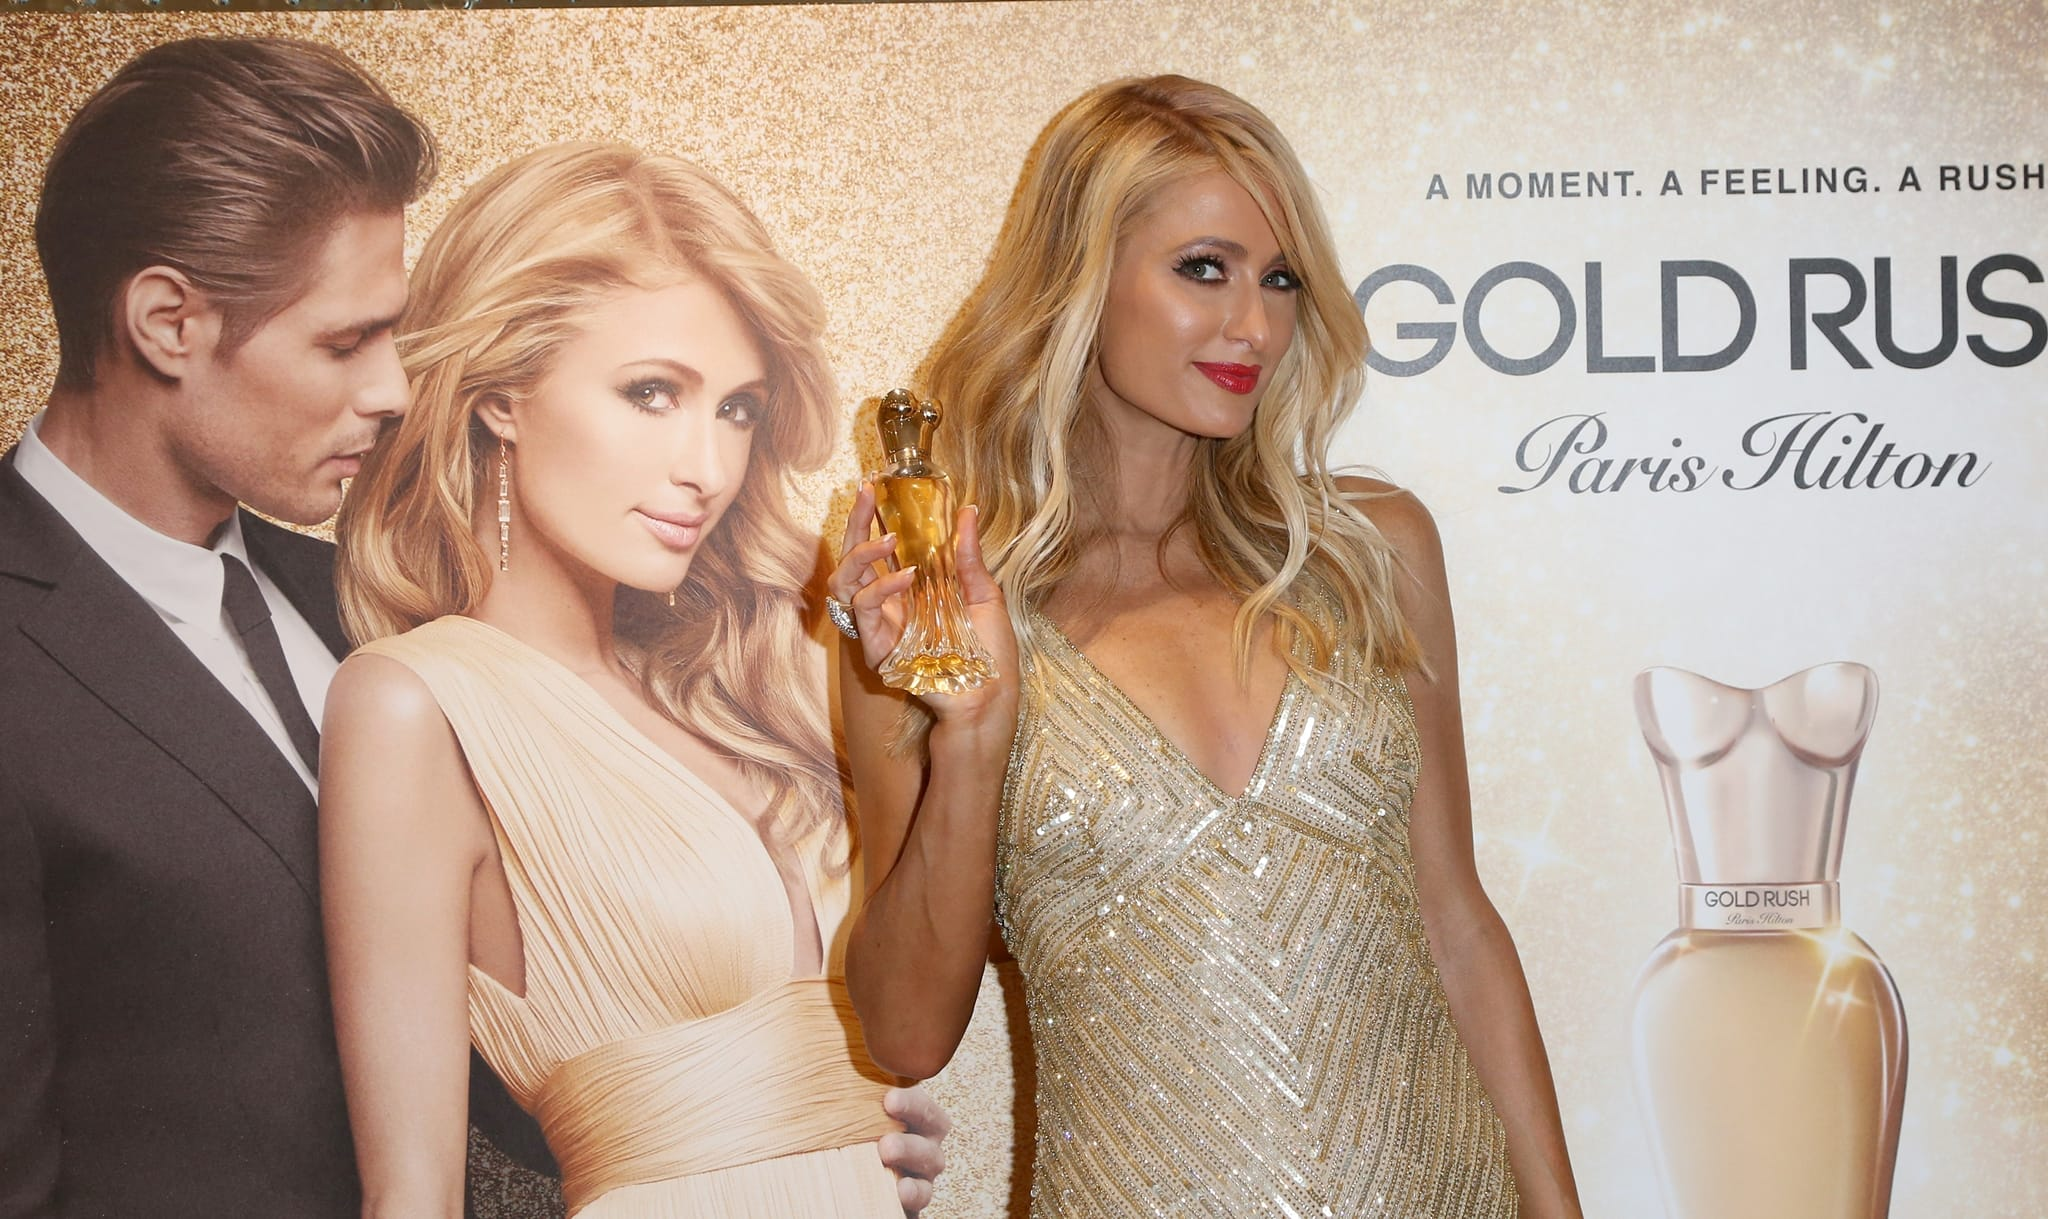 Paris Hilton celebrates the launch of her 20th fragrance Gold Rush